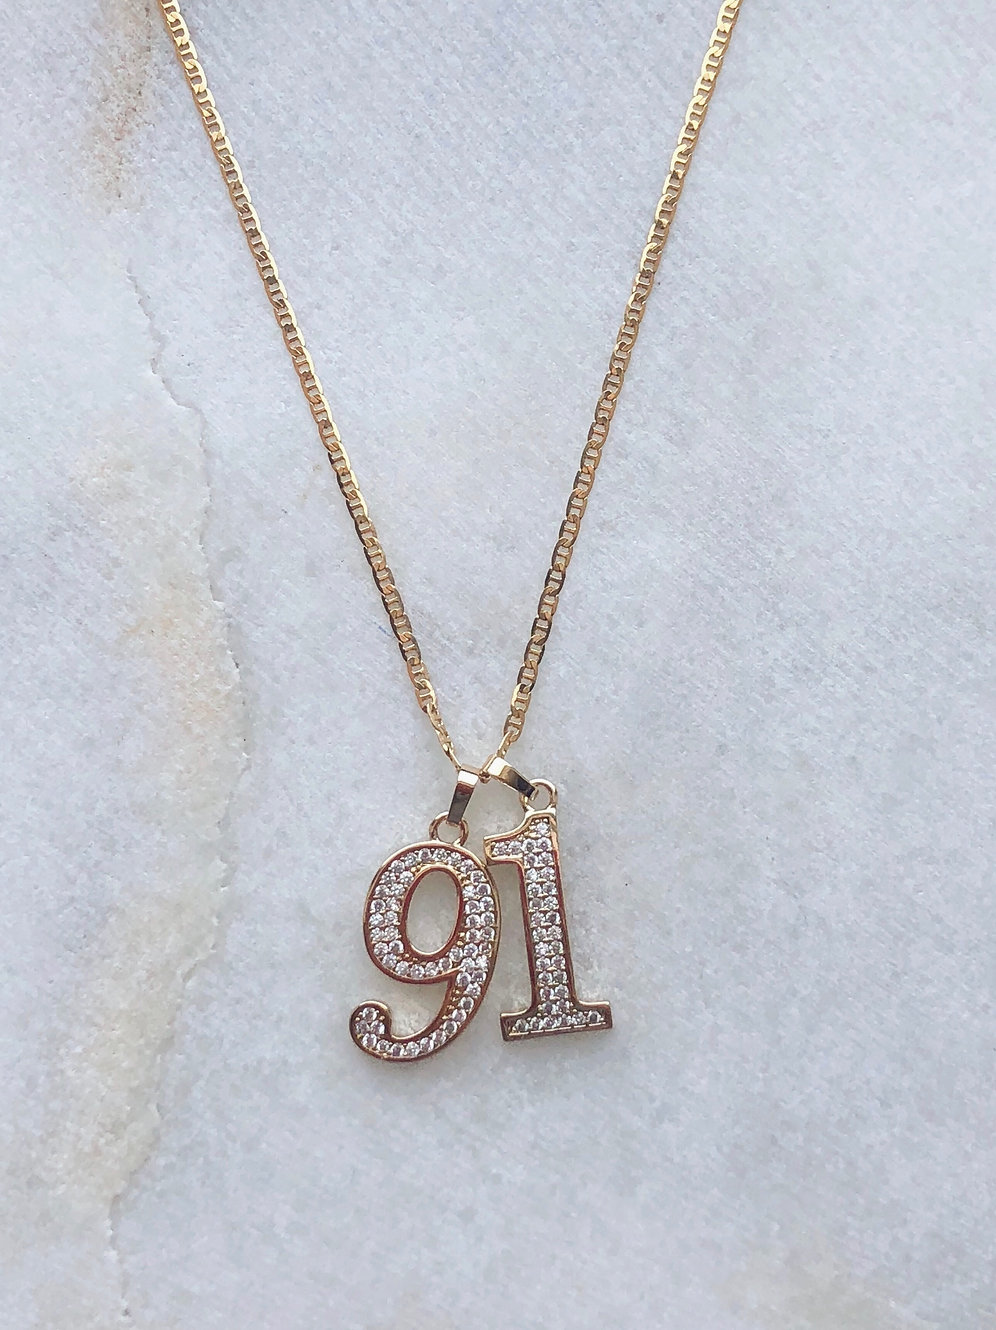 CUSTOM YEAR / LUCKY NUMBER NECKLACE